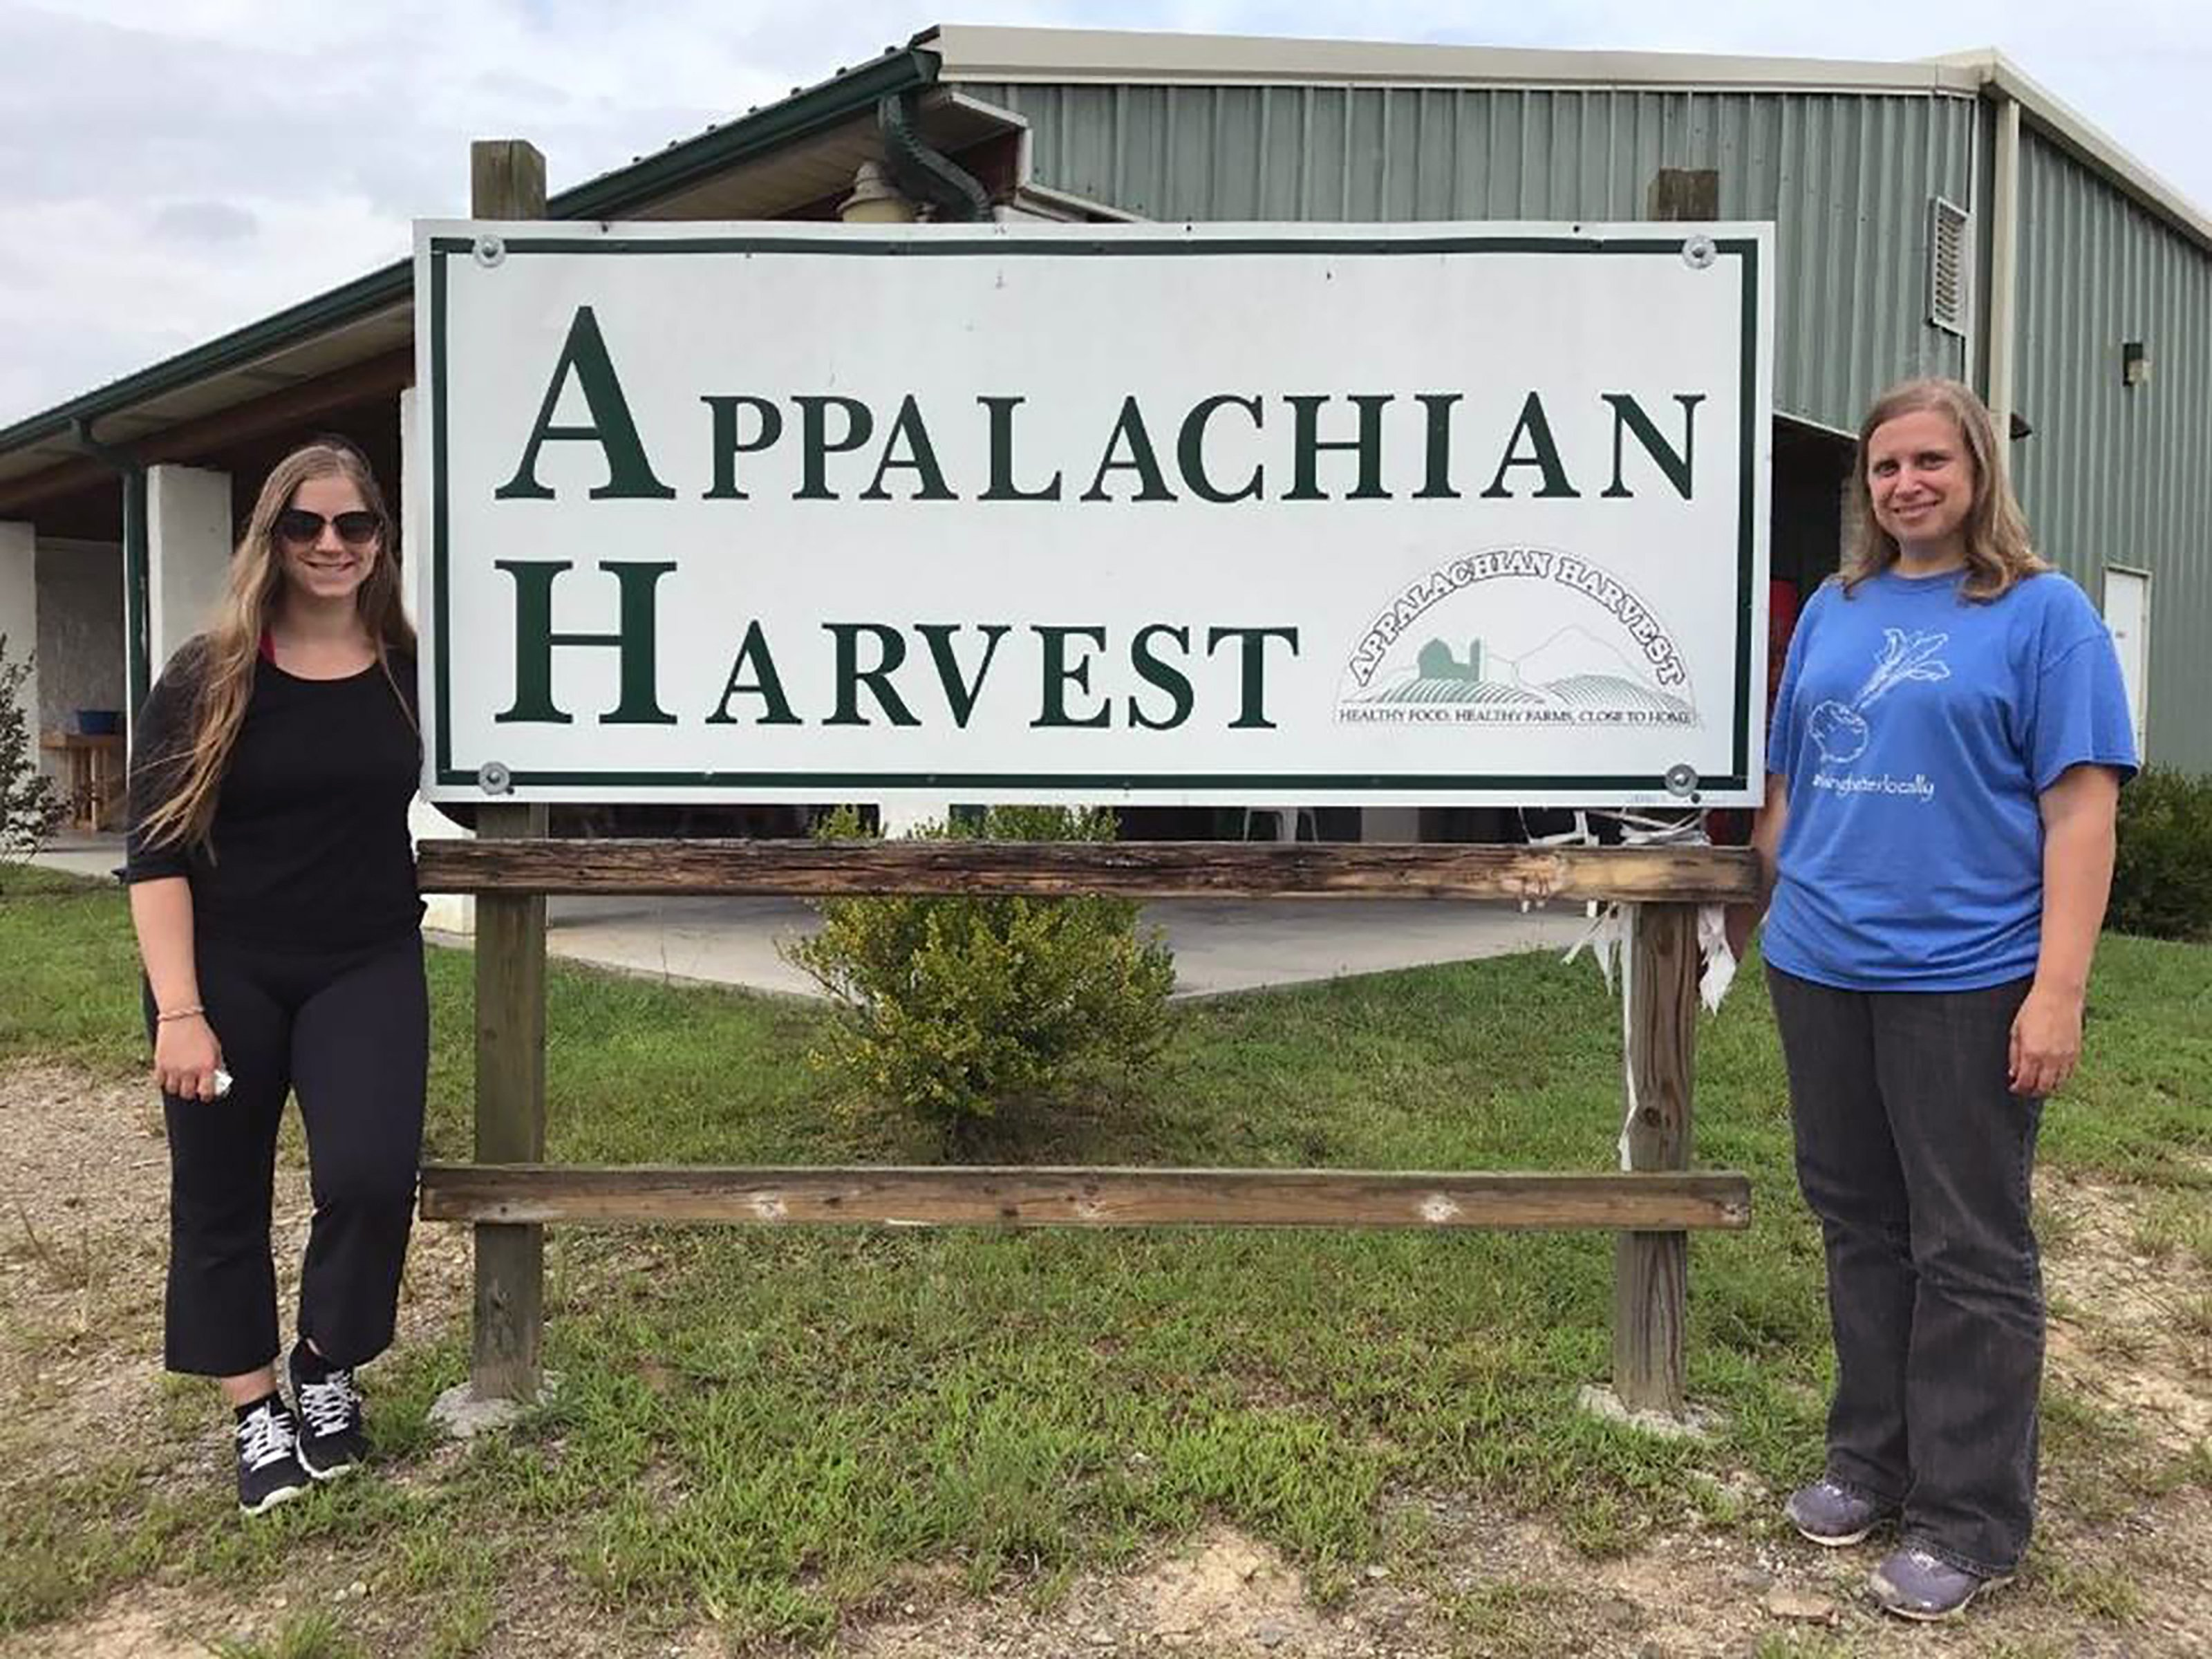 Members of the Appalachian Sustainable Development team and their Appalachian Harvest initiative.